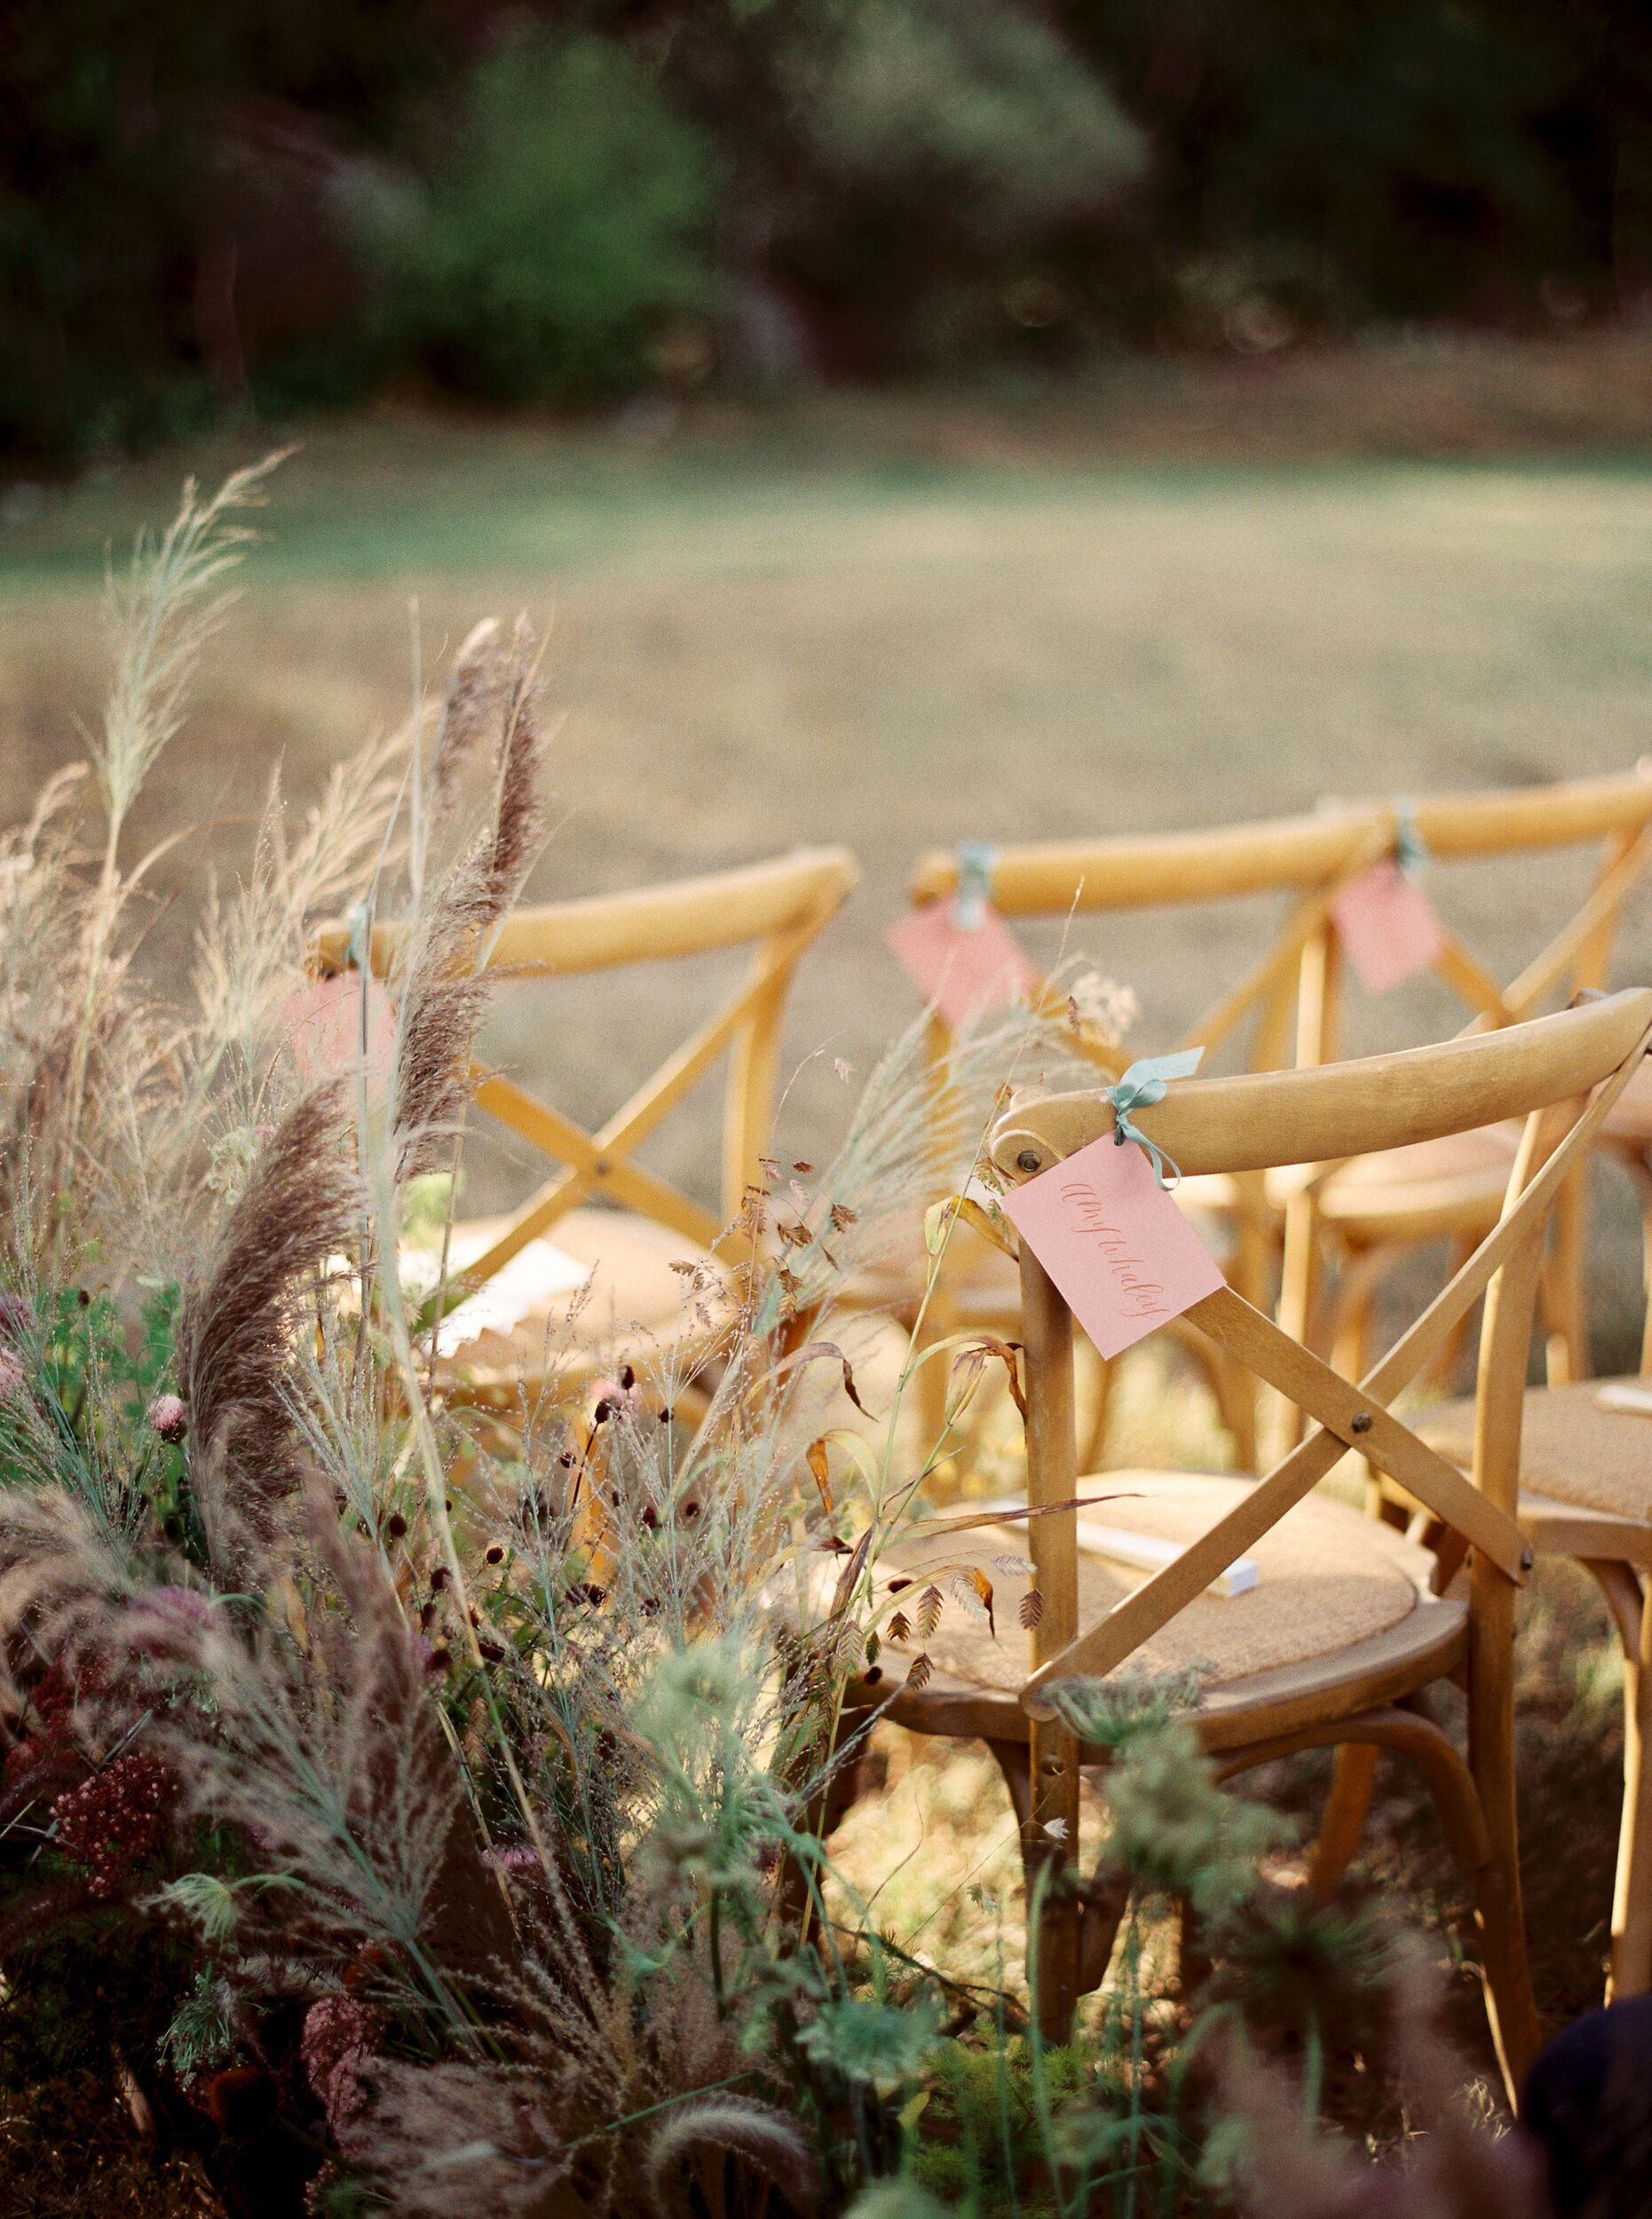 kelsey jacob wedding wooden chairs with grasses growing around them